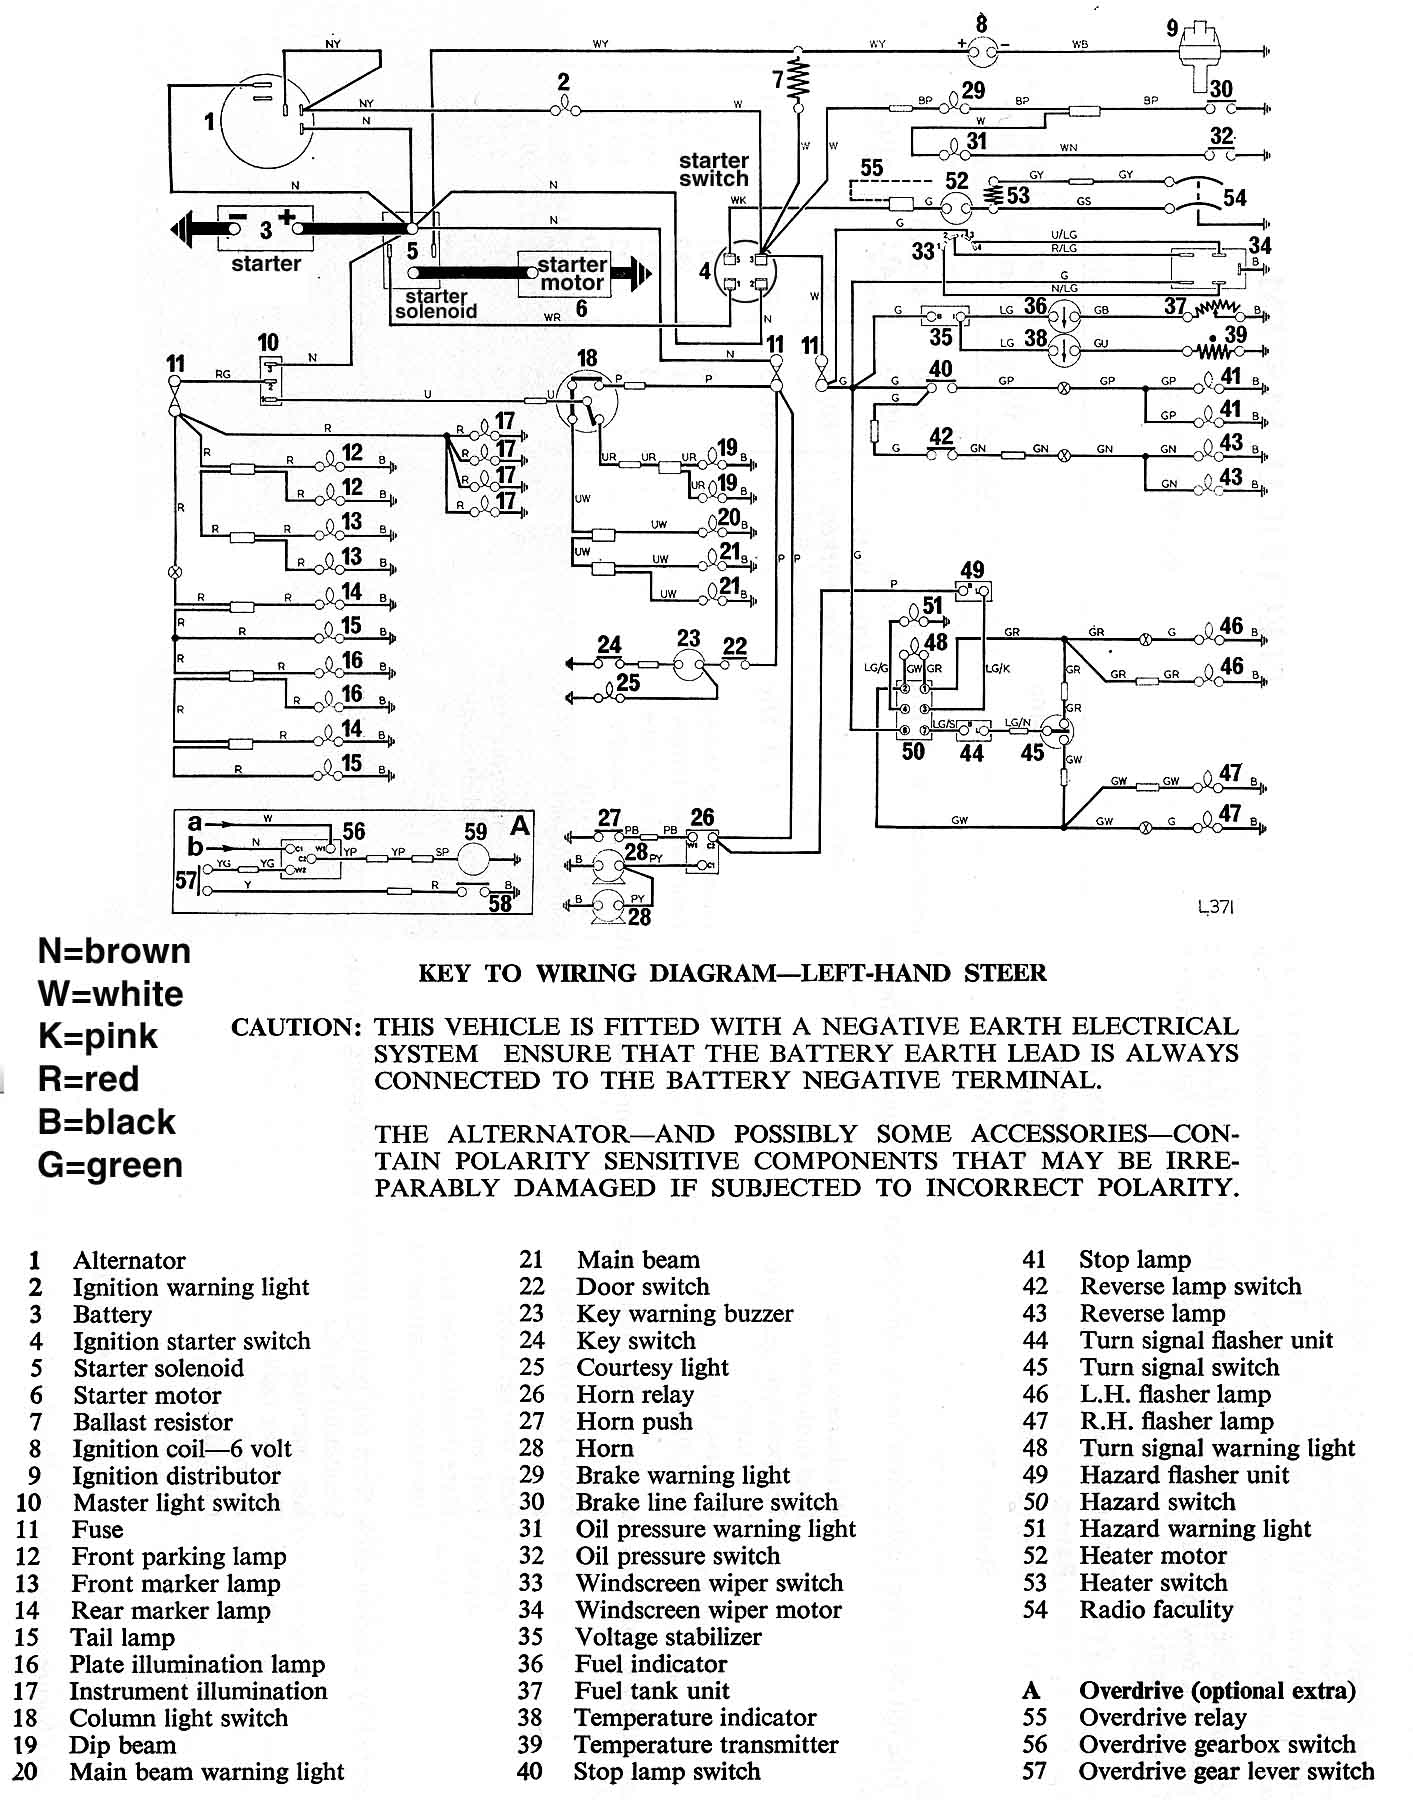 1968 Triumph Spitfire Wiring Diagram Archive Of Automotive Suzuki Vitara Spotlight Schematics And Diagrams Gt6 Herald Rh Triumphspitfire Com